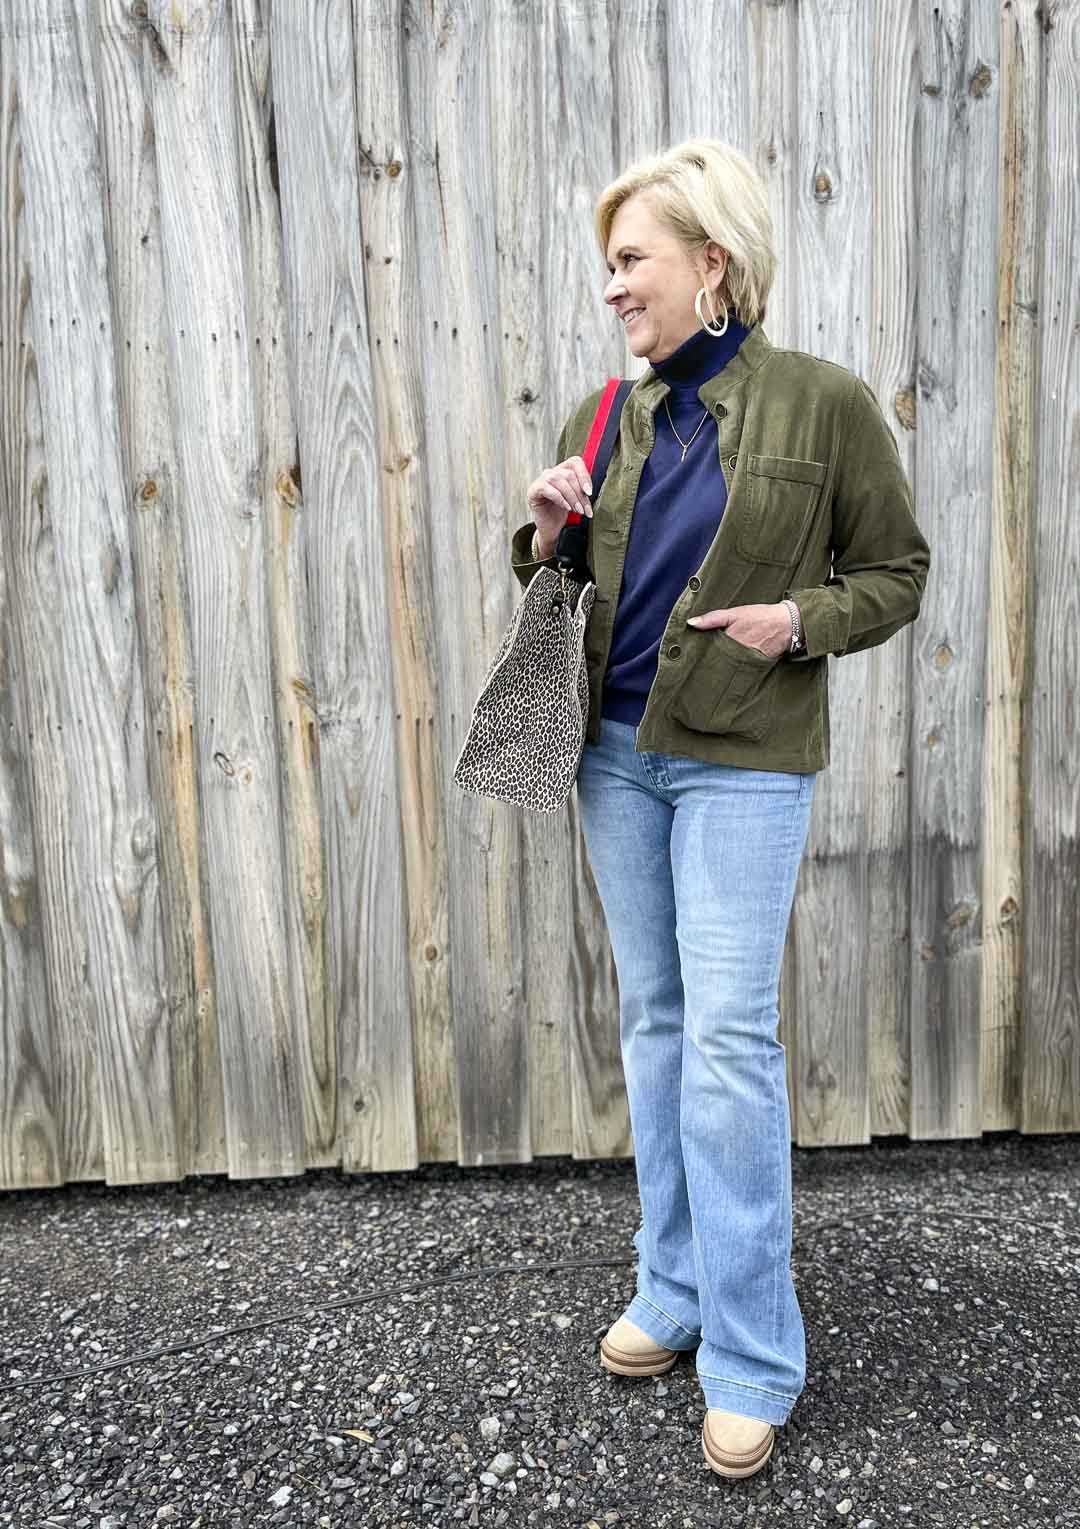 Over 40 Fashion Blogger, Tania Stephens, is wearing a olive thin wale corduroy jacket, a turtleneck sweater, and a pair of flare jeans and carrying a large tote bag